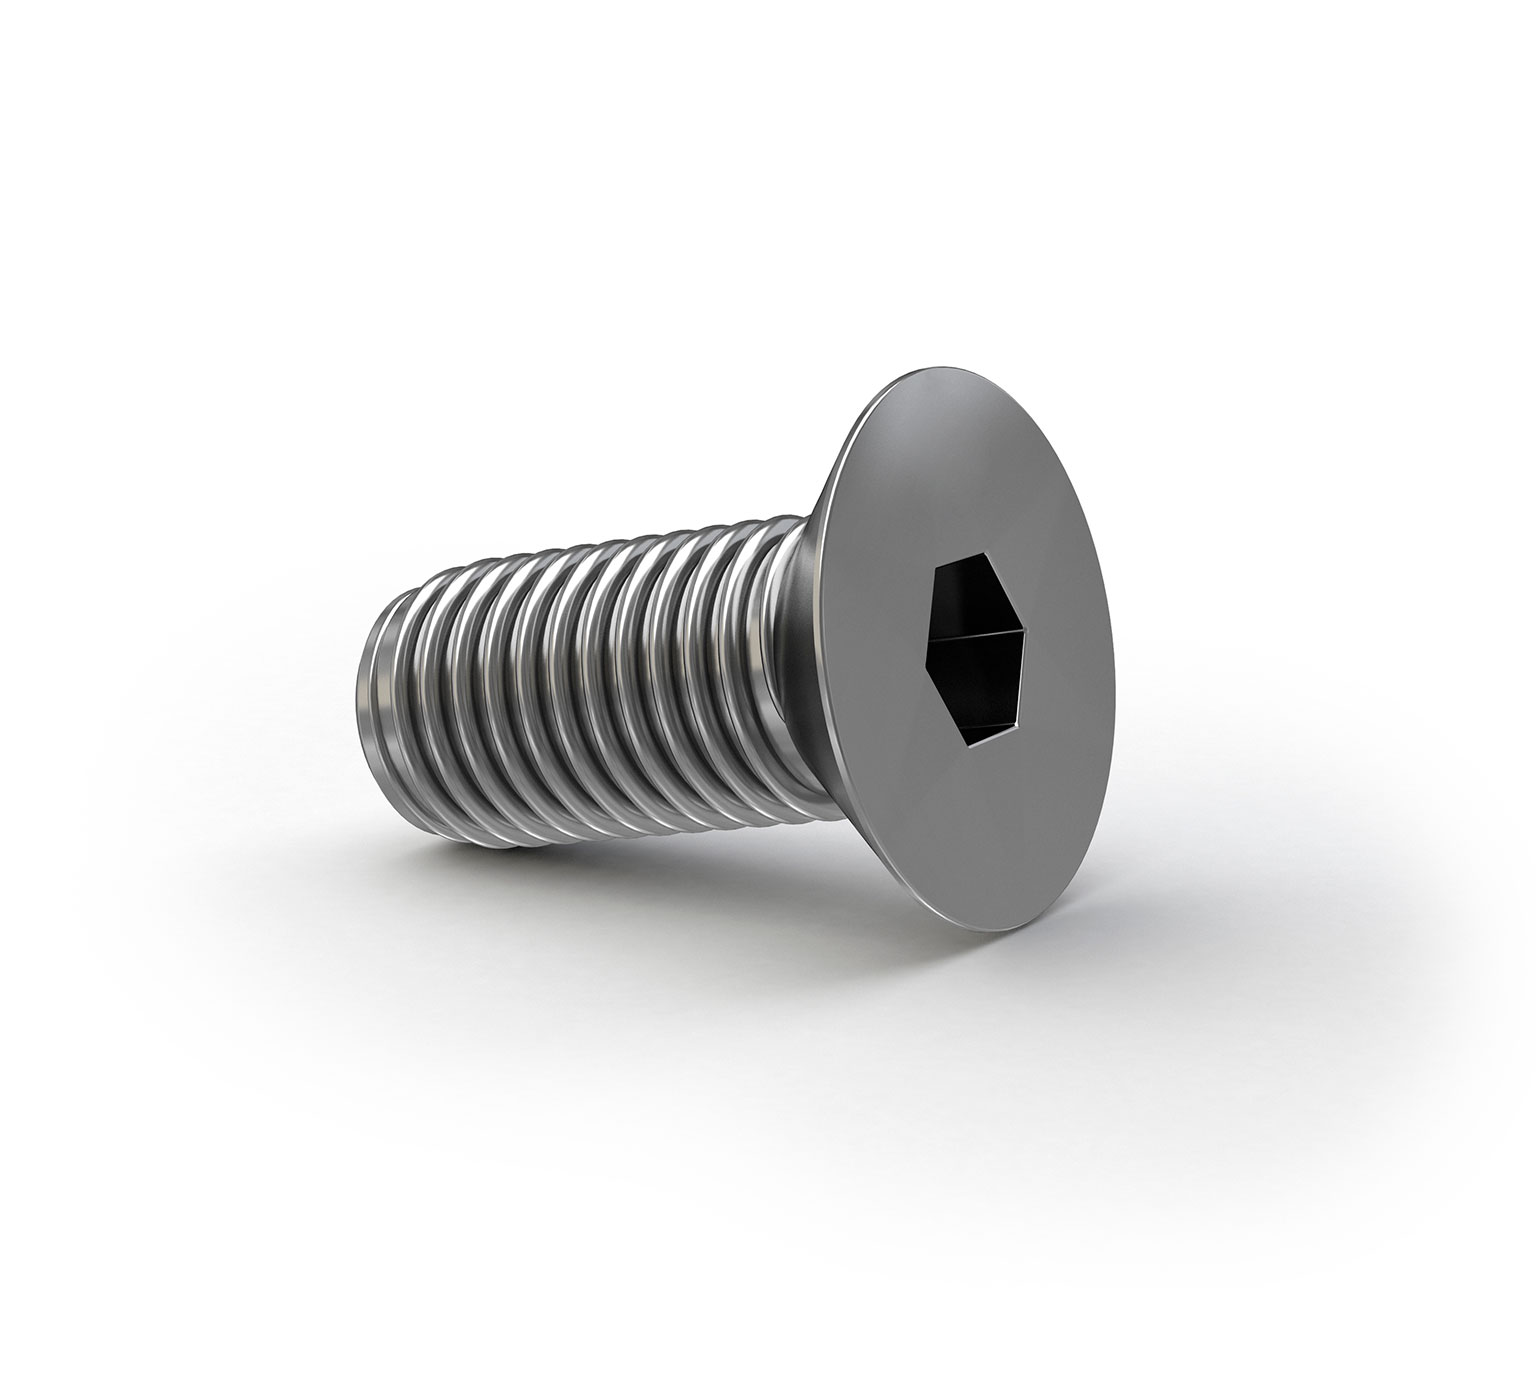 79246 Stainless Steel Screw - 0.71 x 0.787 in alt 1